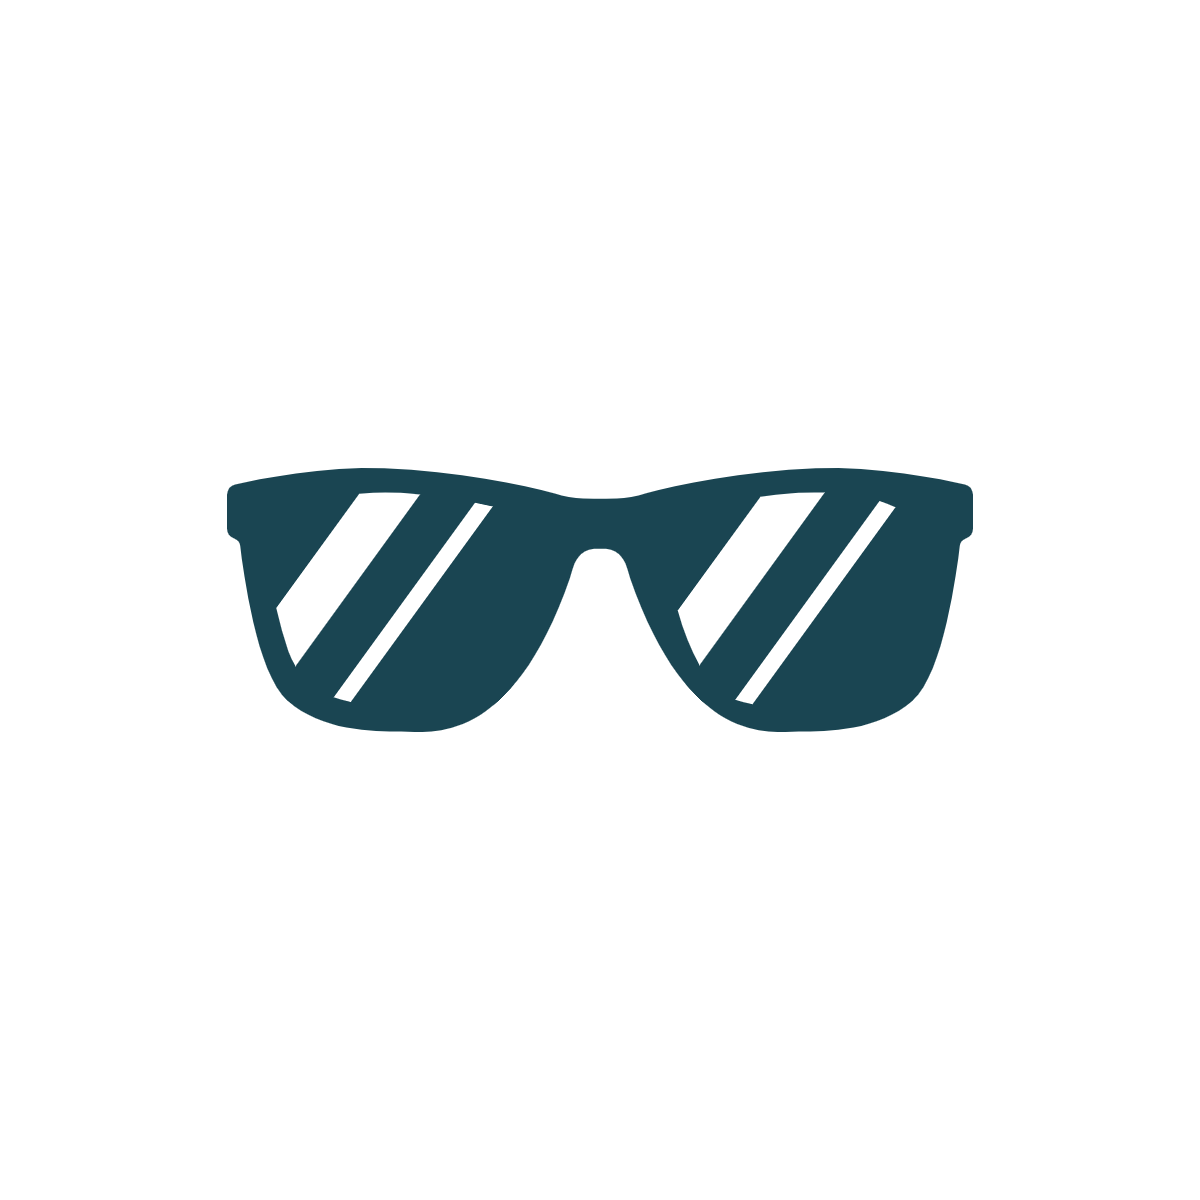 icon_Sunglasses_2902603.png